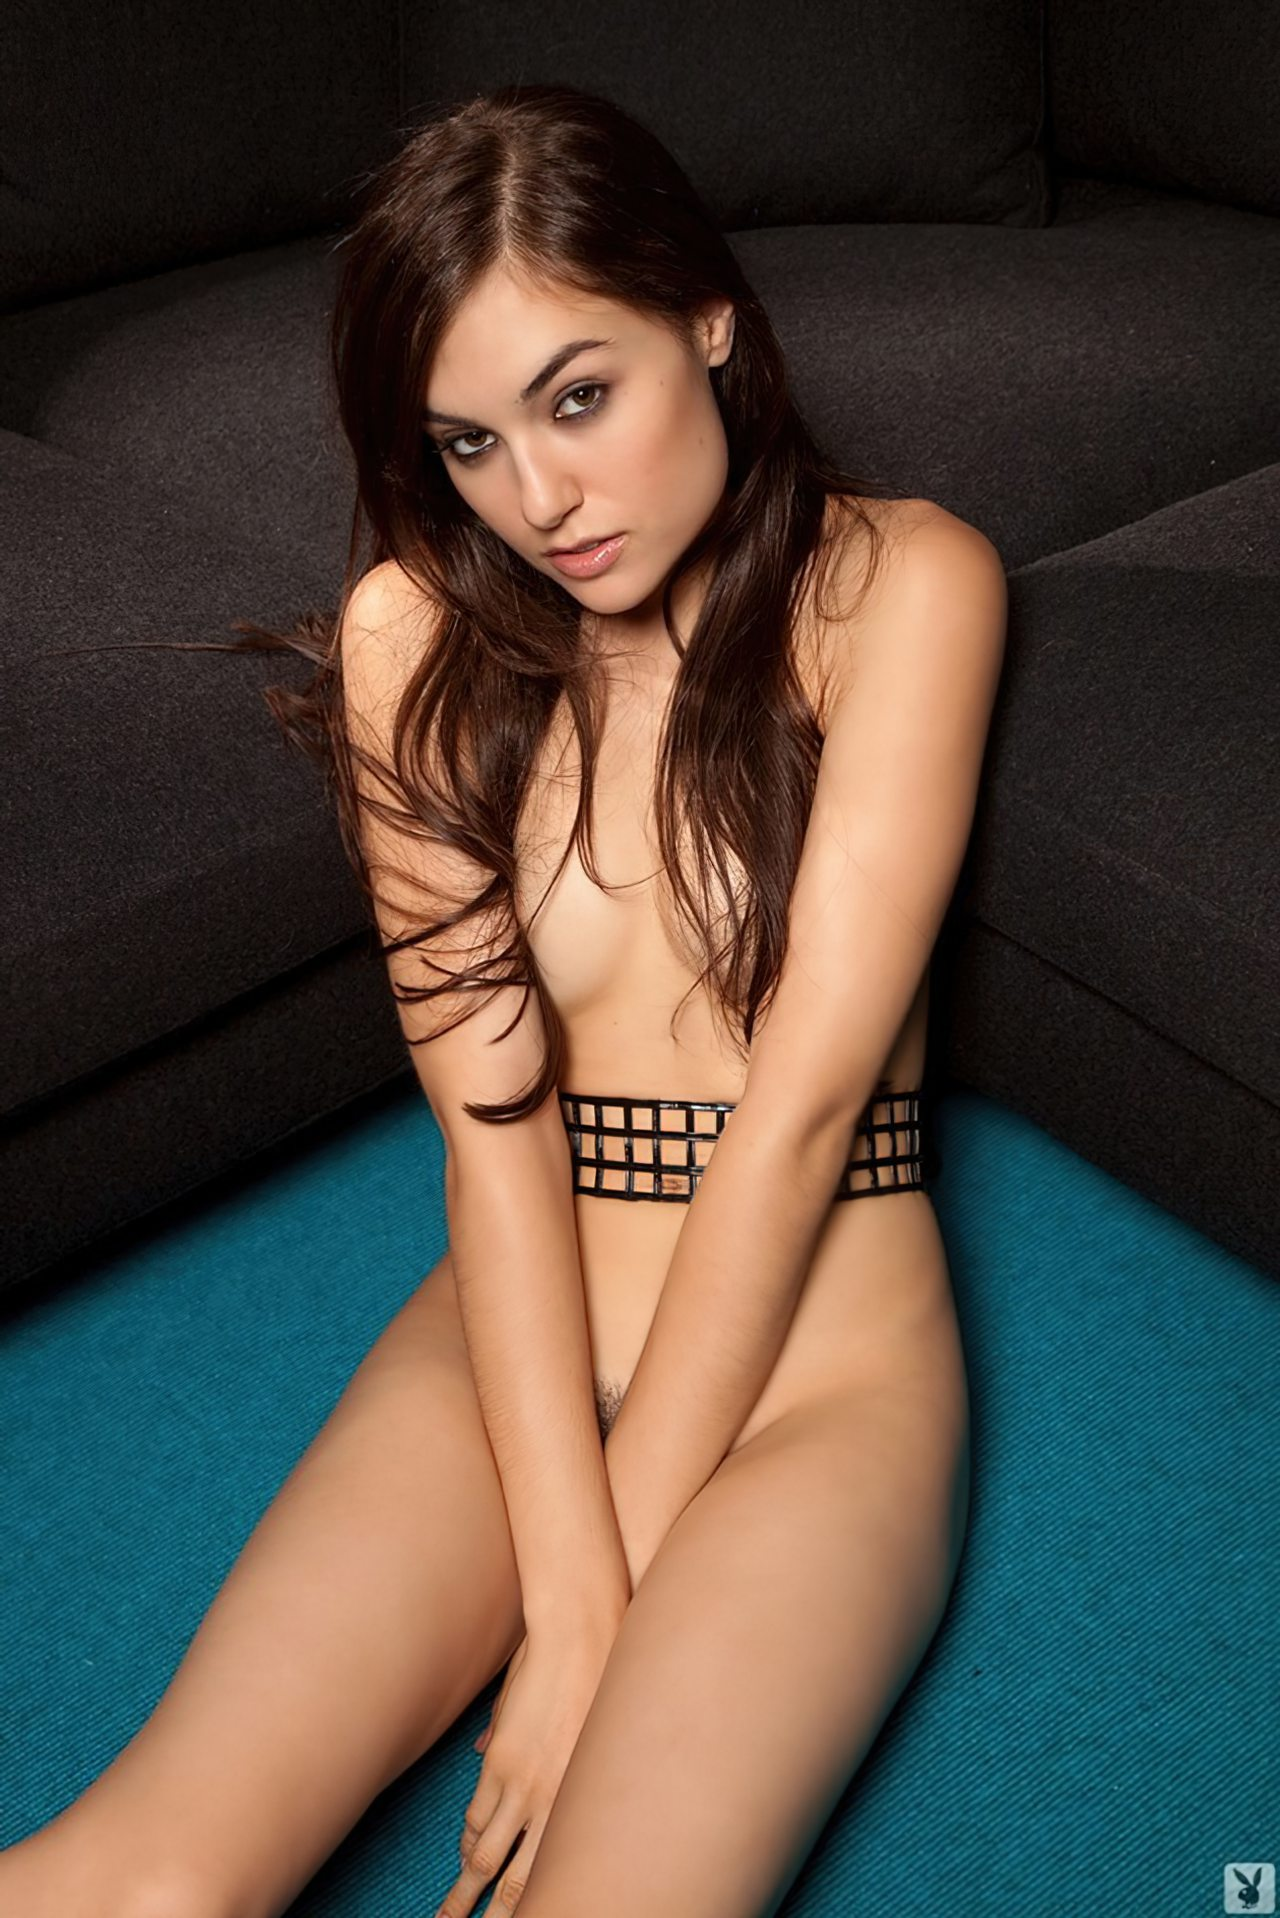 Sasha Grey na Playboy (16)